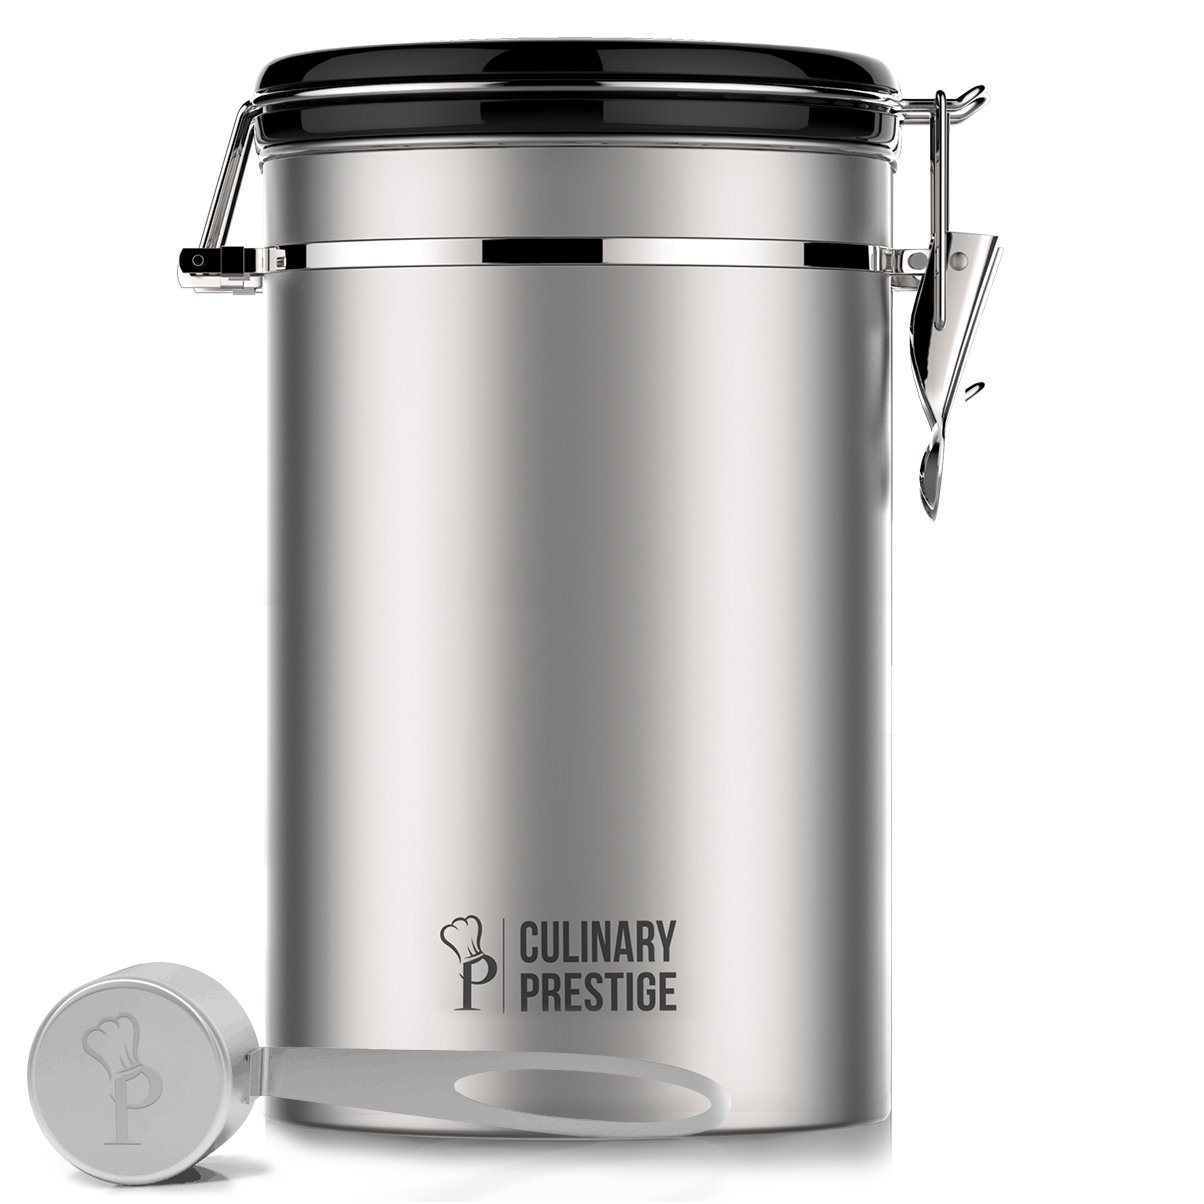 Culinary Prestige Stainless Steel Coffee Canister 22 oz - Built-in One Way Valve Blocks CO2 From Ruining Coffee Flavor - Built-in Freshness Calendar – Free eBook & Stainless Steel SCOOP